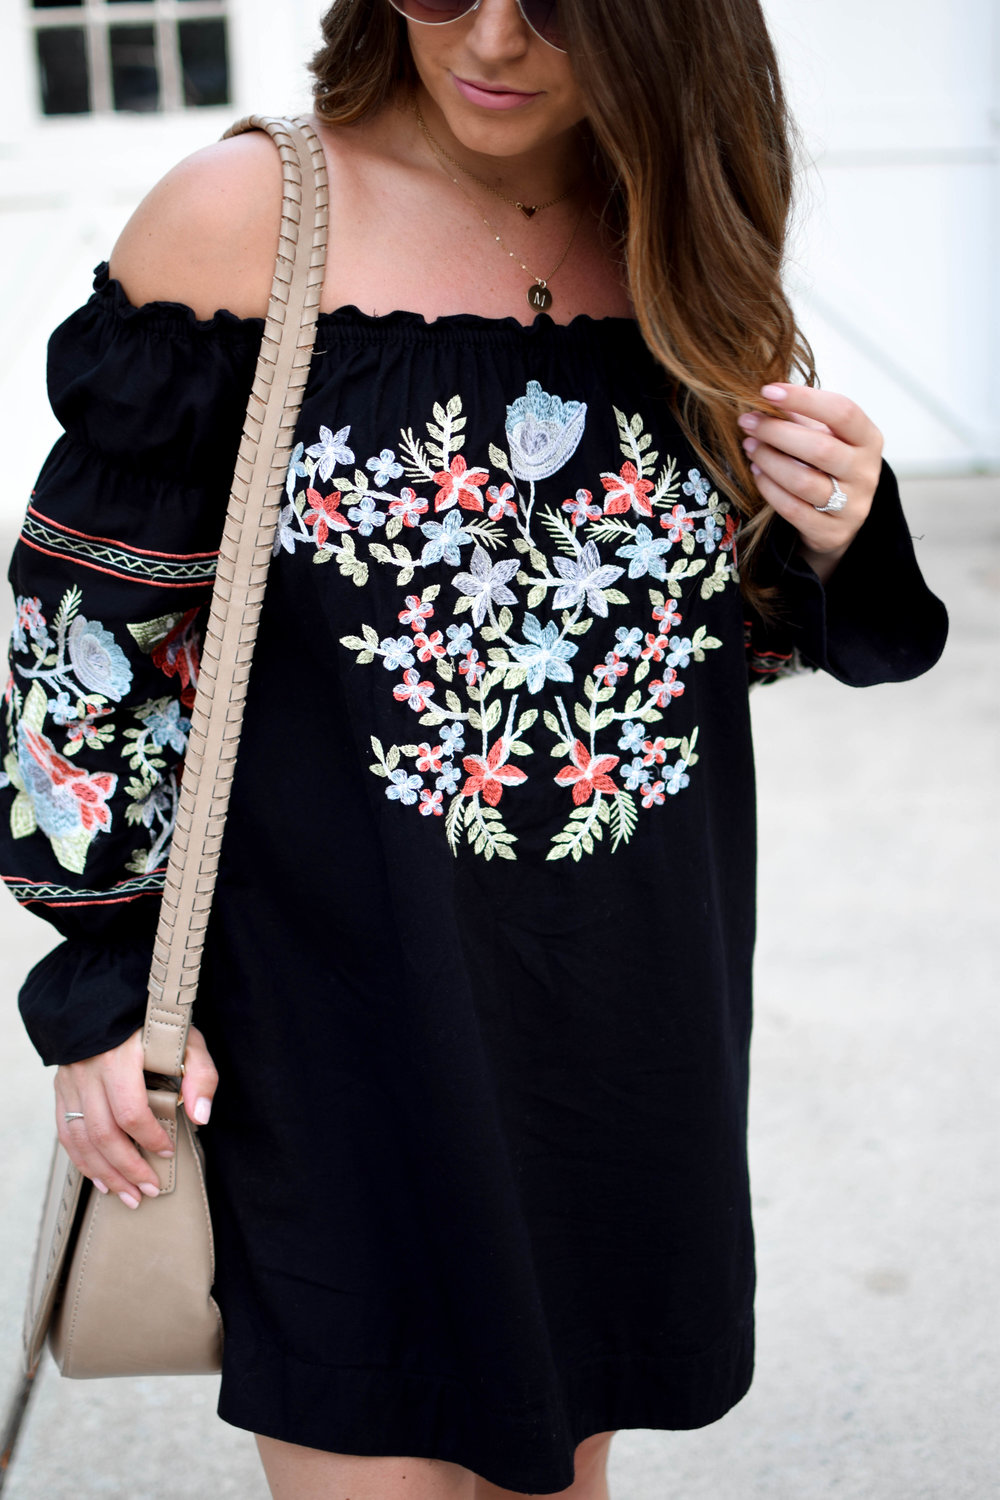 free people dress / off the shoulder dress / embroidered dress / fall transition outfit idea